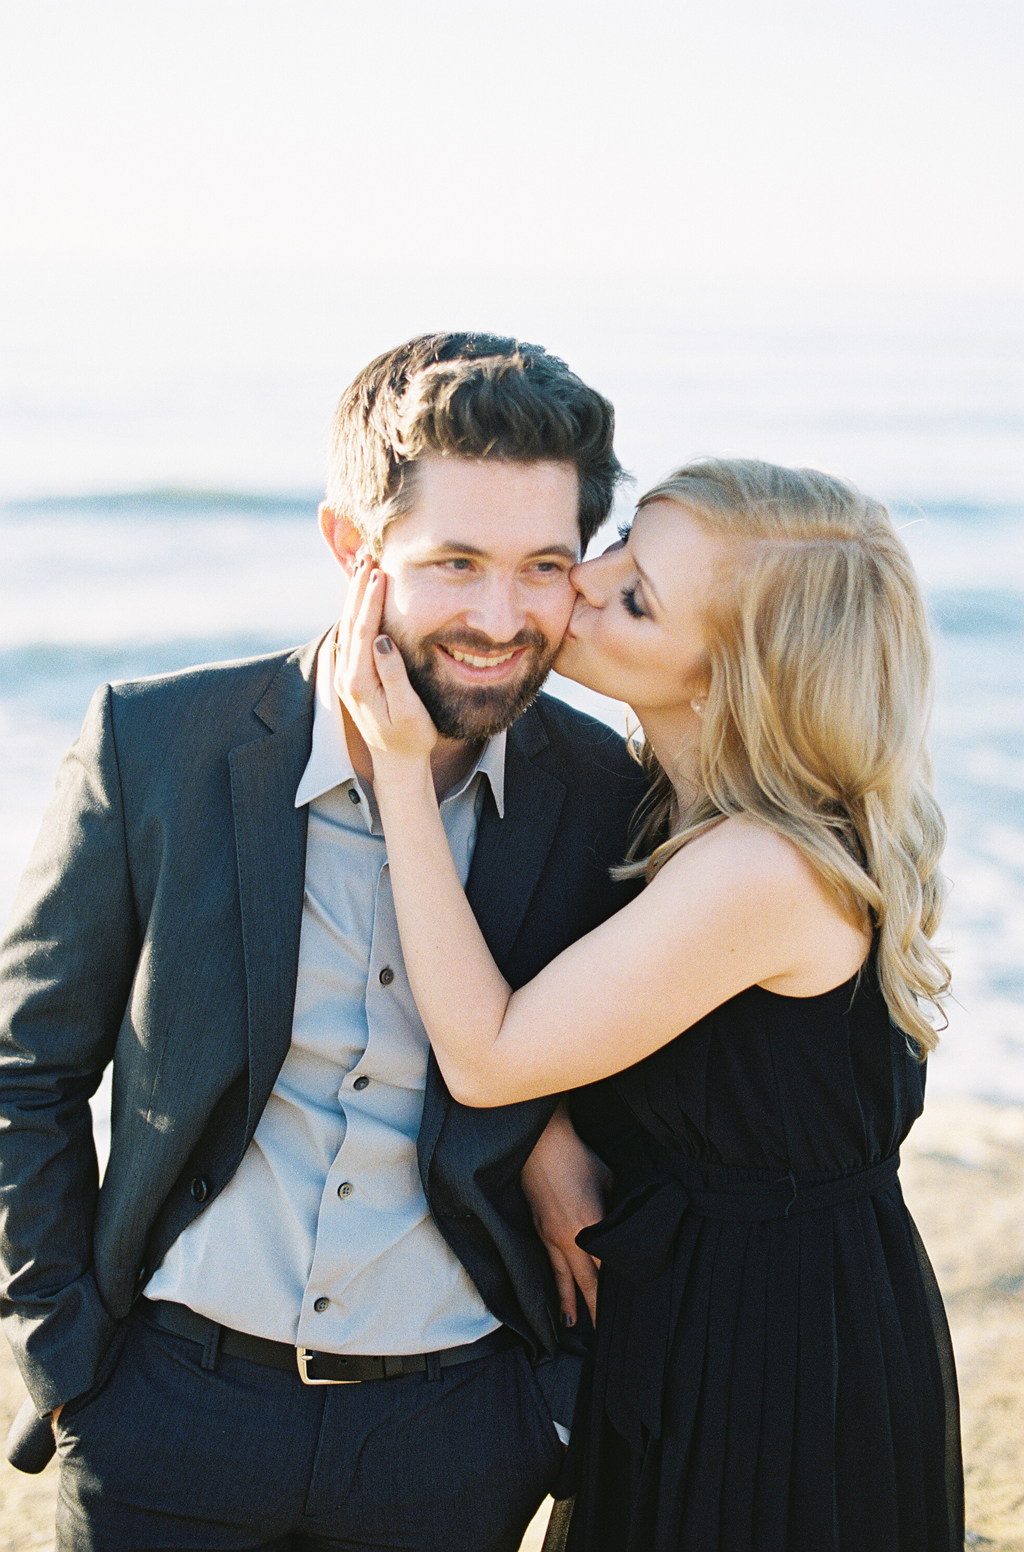 a soon-to-be bride kissed her fiance during their coastal engagement session in San Diego.